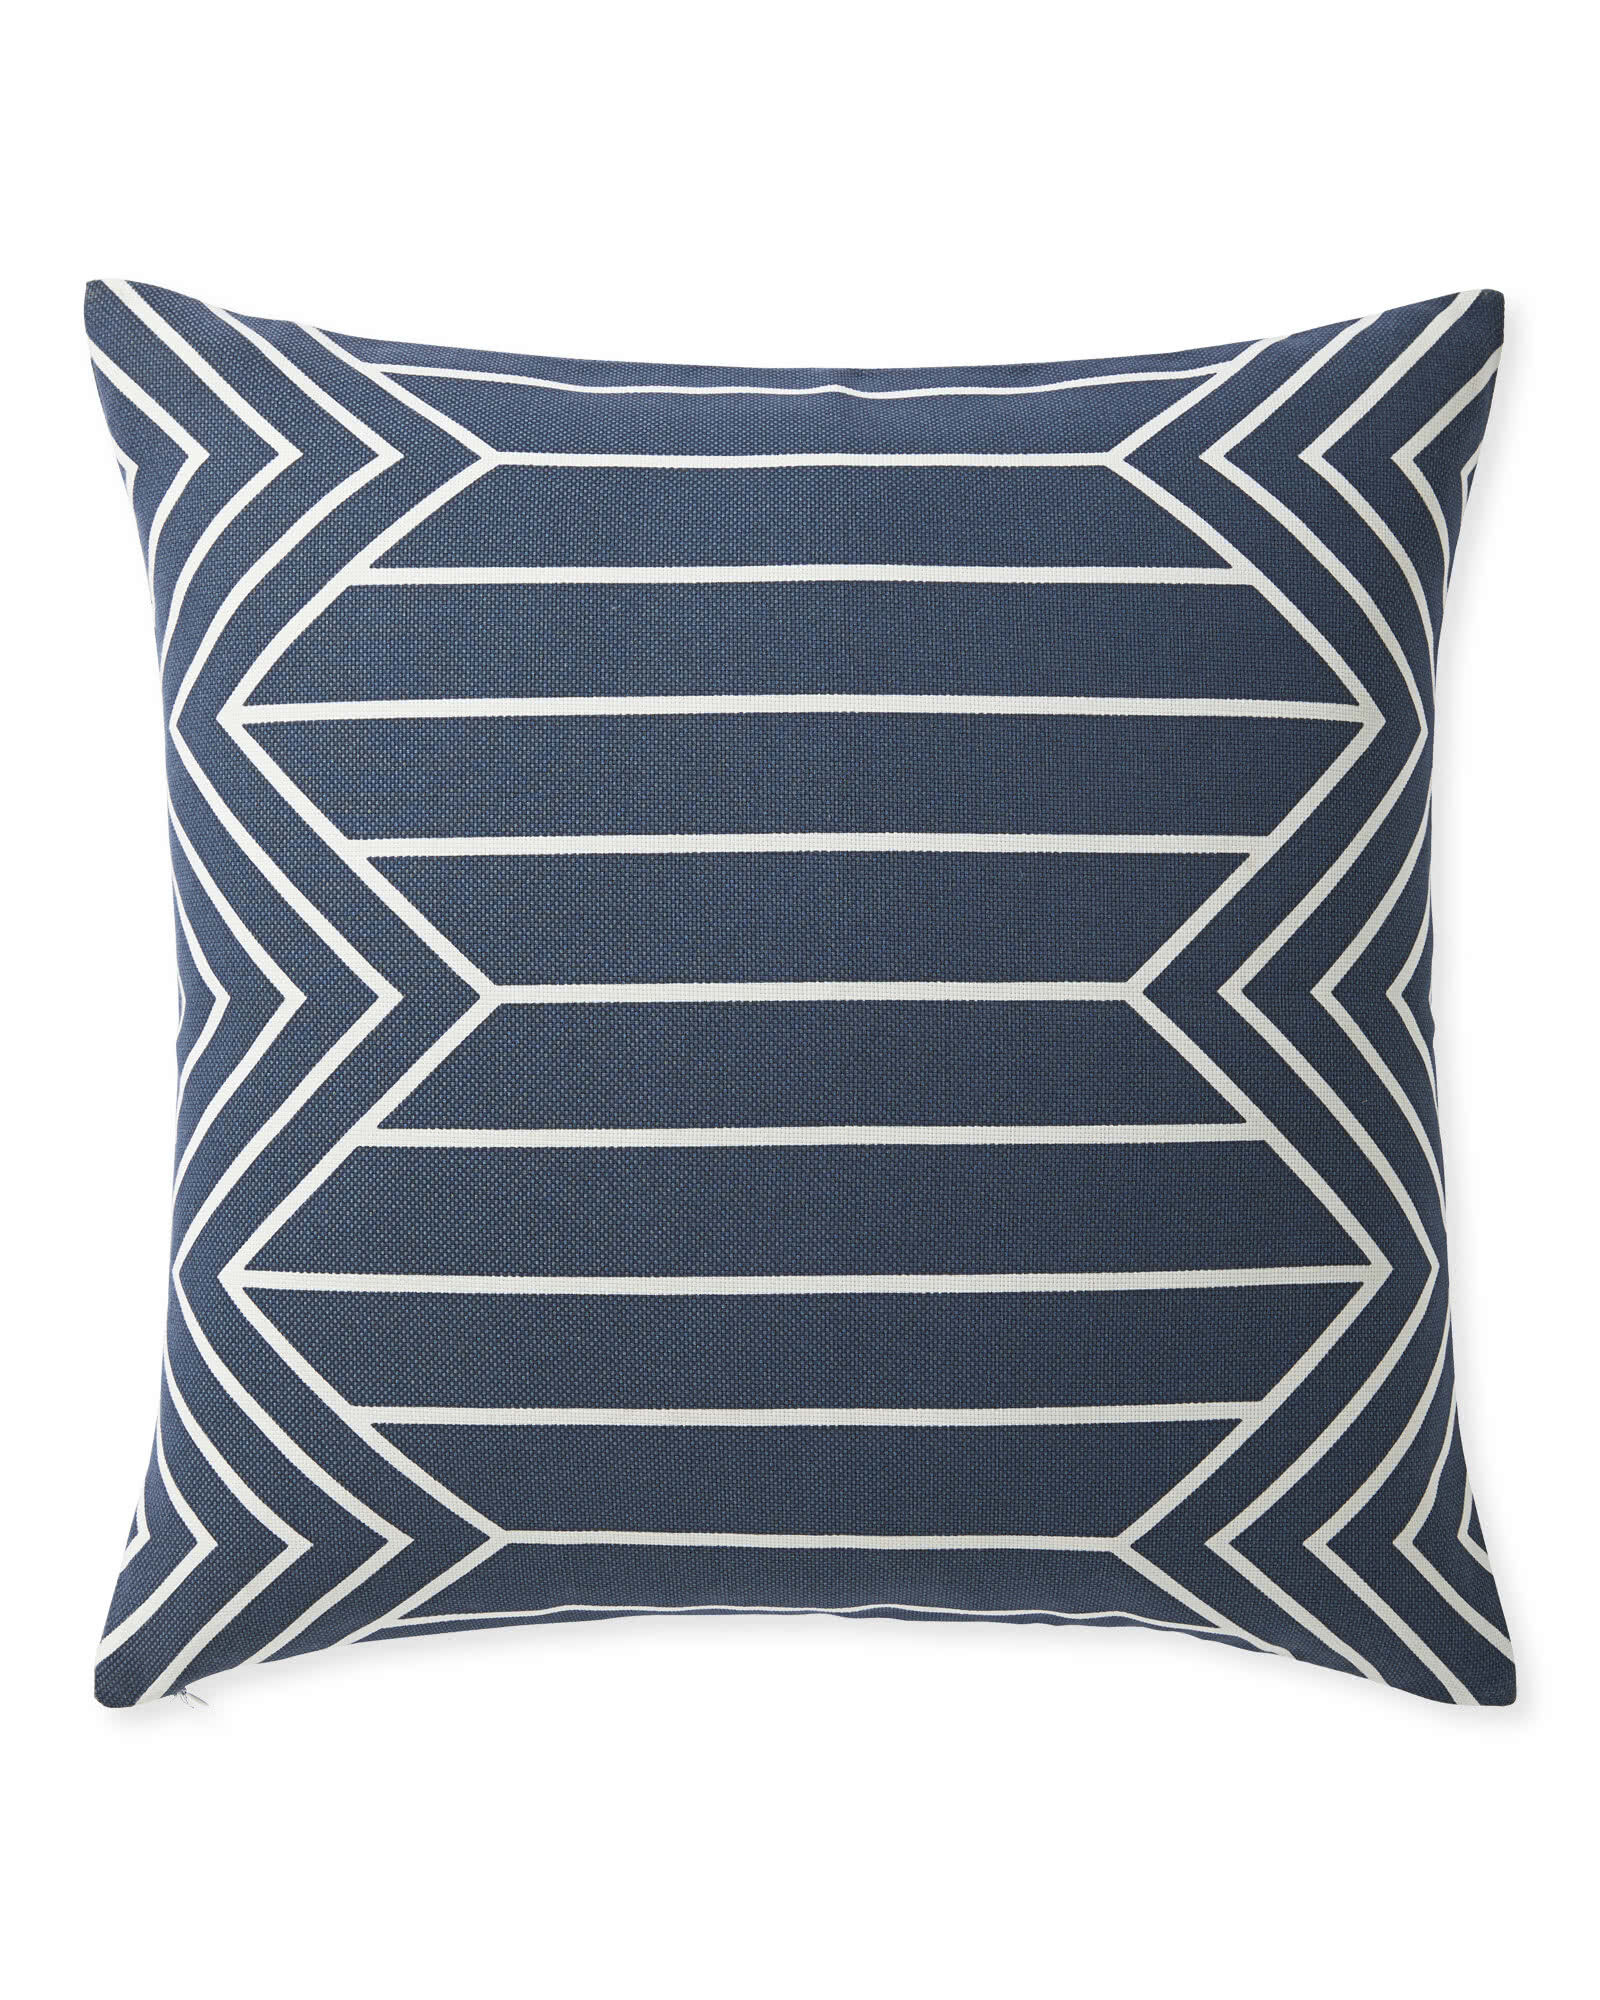 Portsmouth Outdoor Pillow Cover, Navy